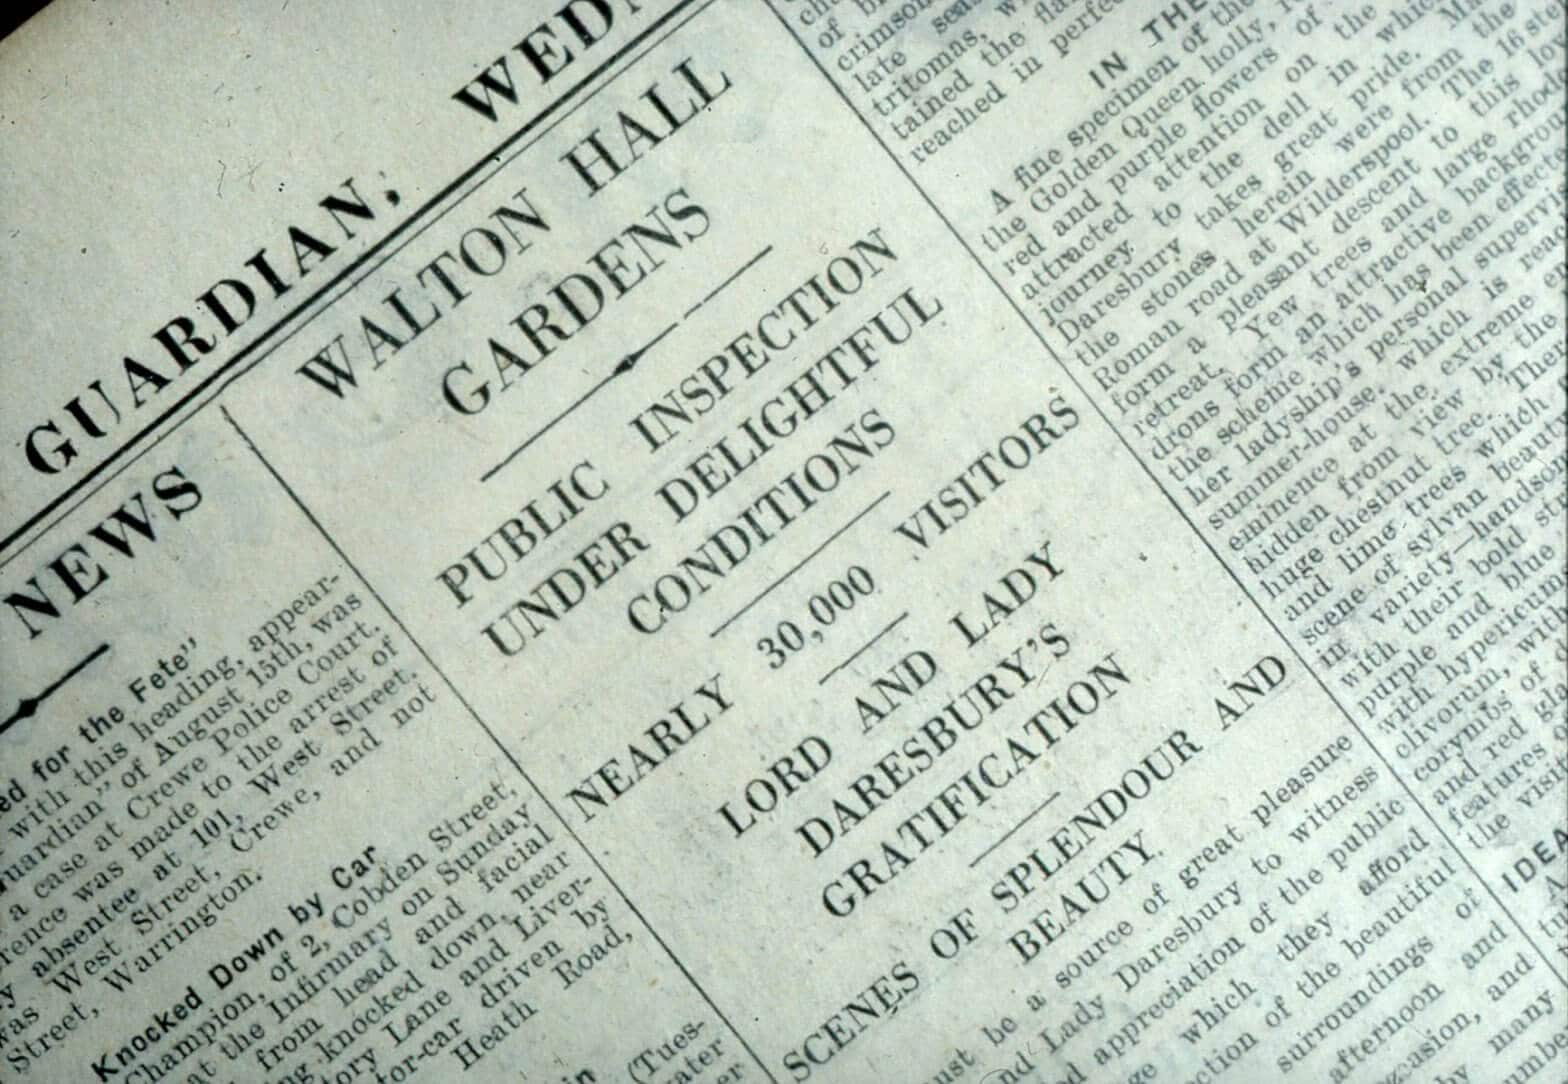 A piece of heritage. A newspaper snippet which details one of Walton Hall and Gardens open days.